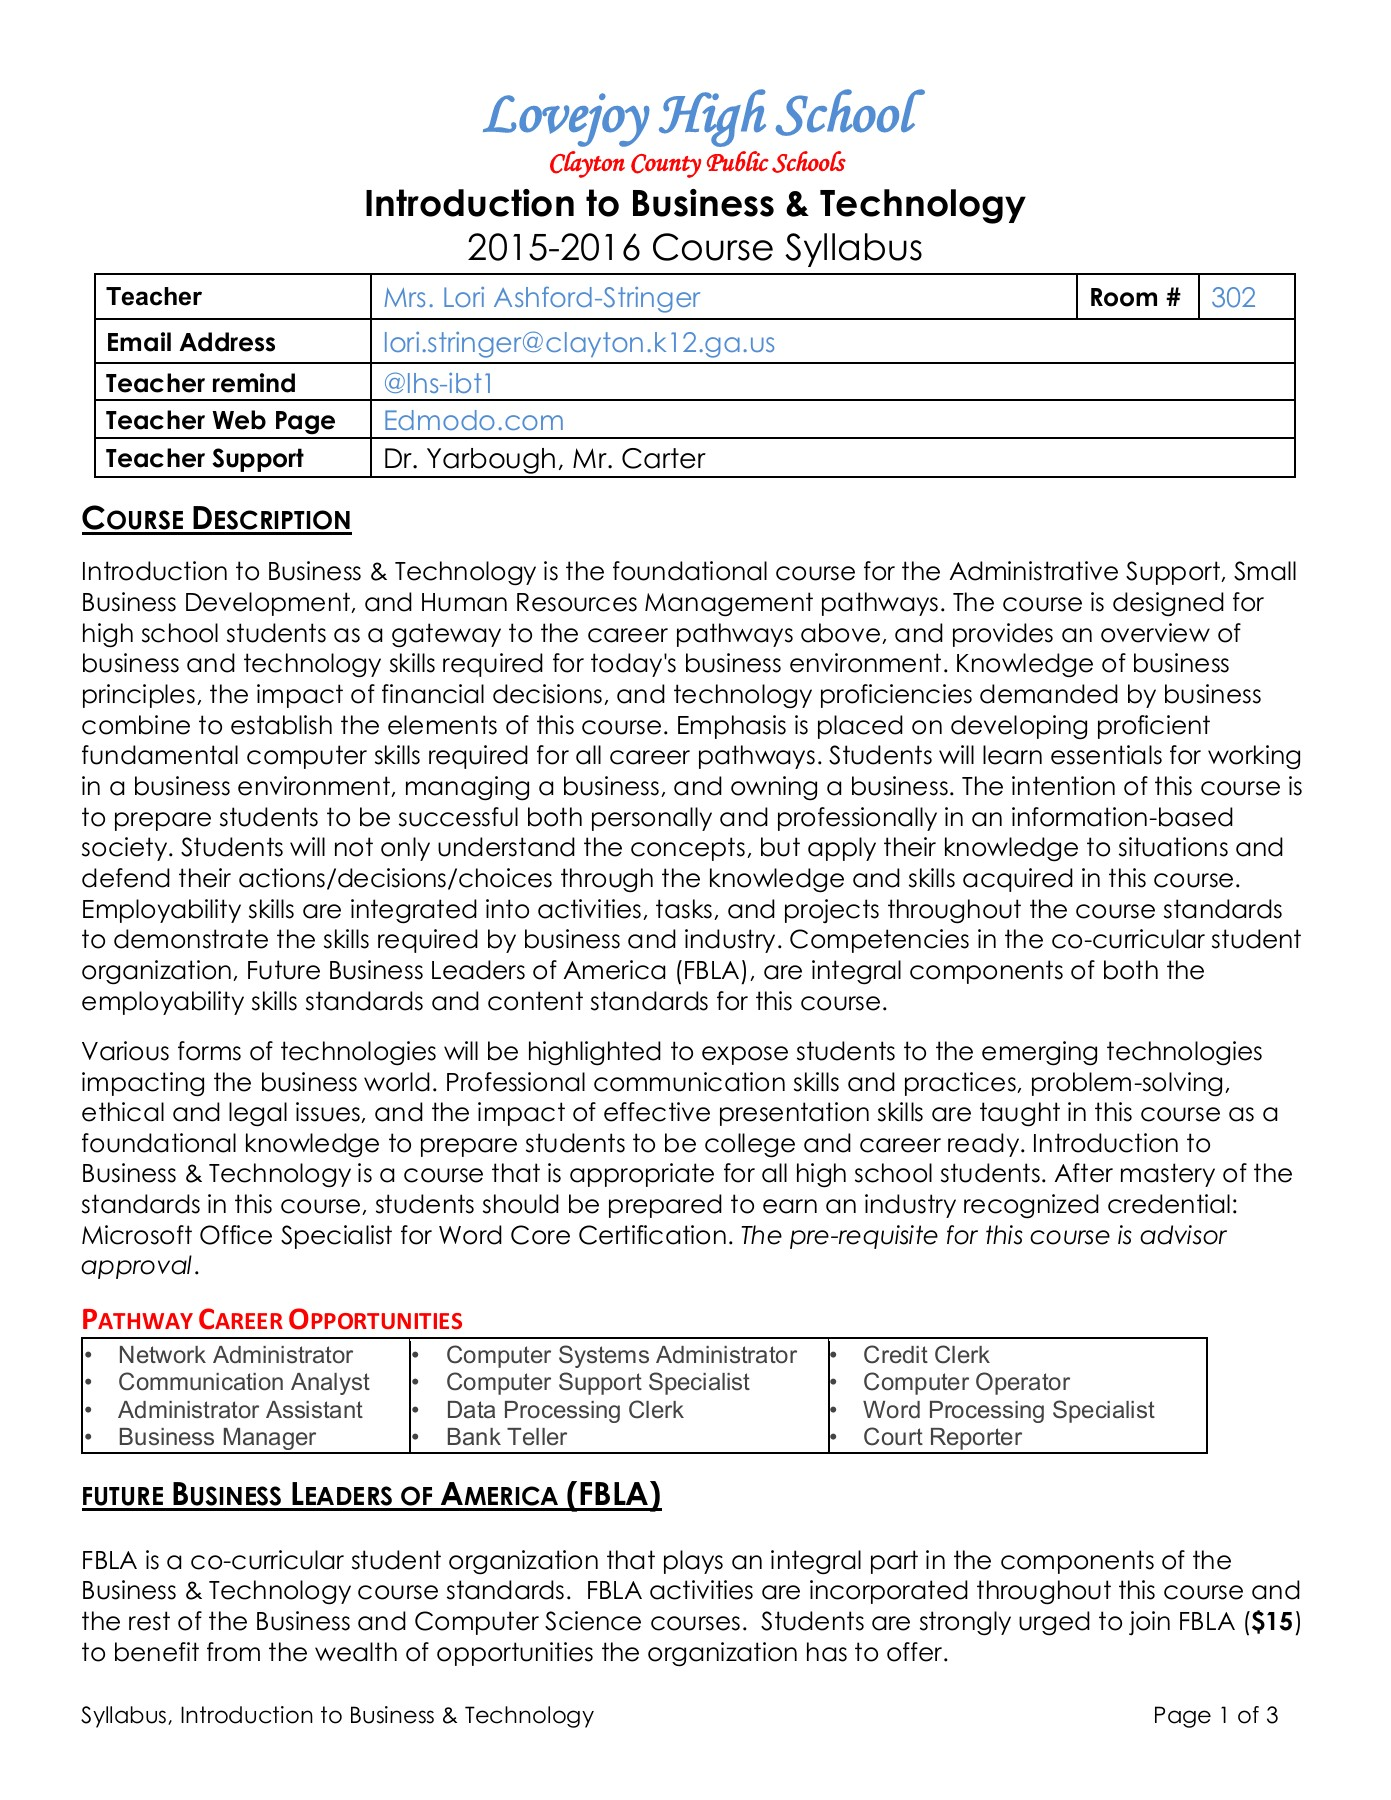 Intro to Business Technology Syllabus 2015-2016 Pages 1 - 3